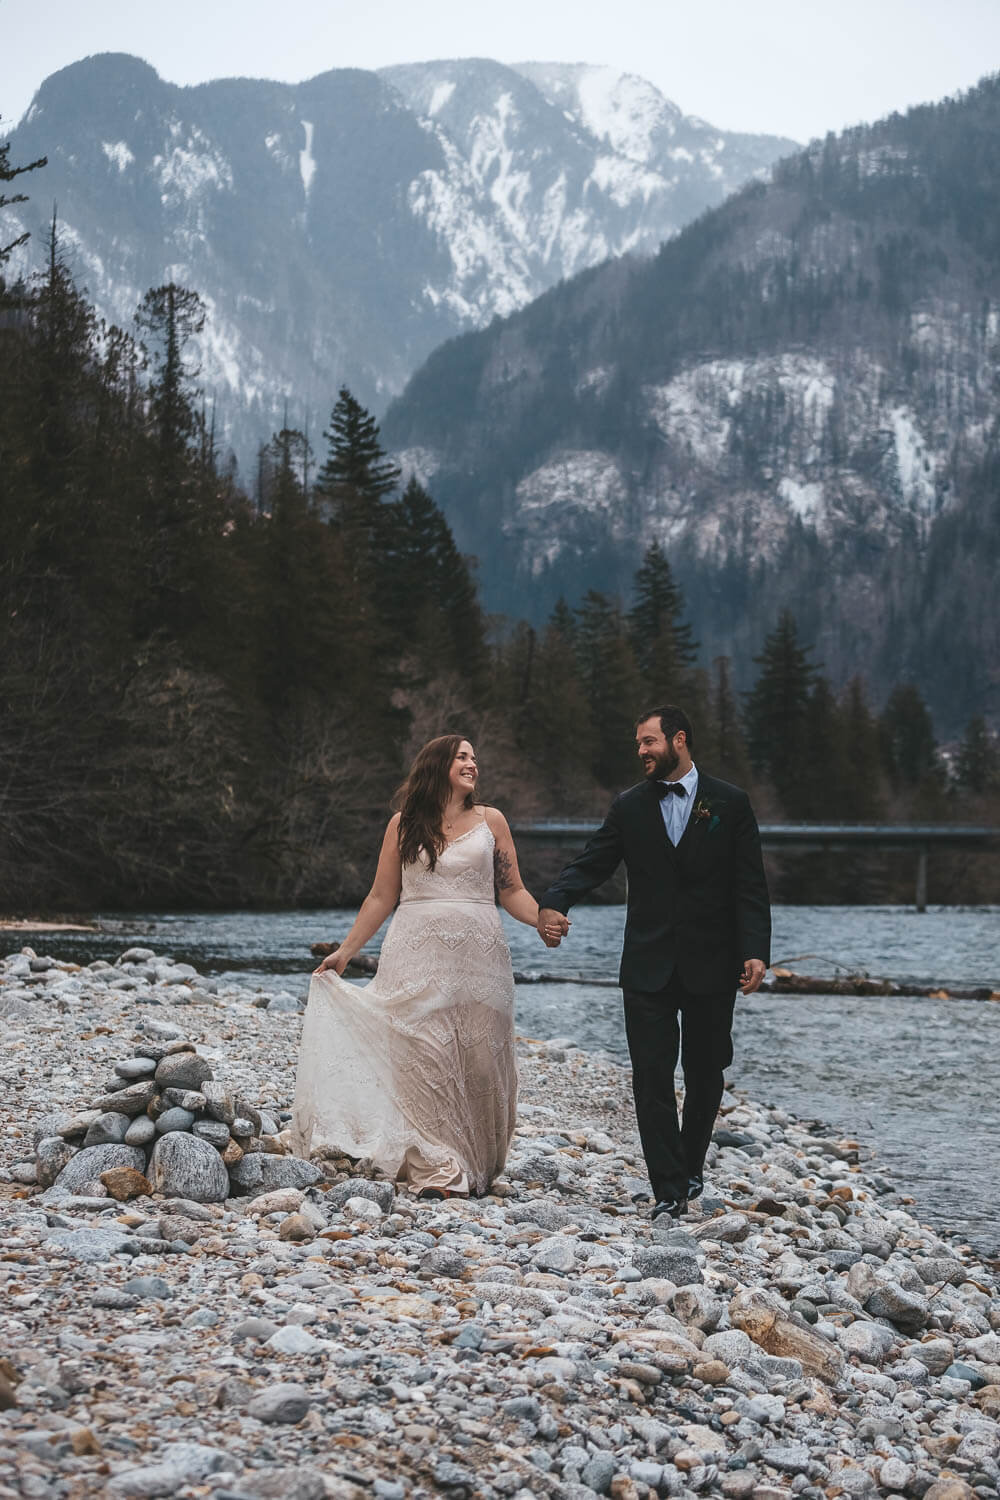 married-couple-walk-mountains